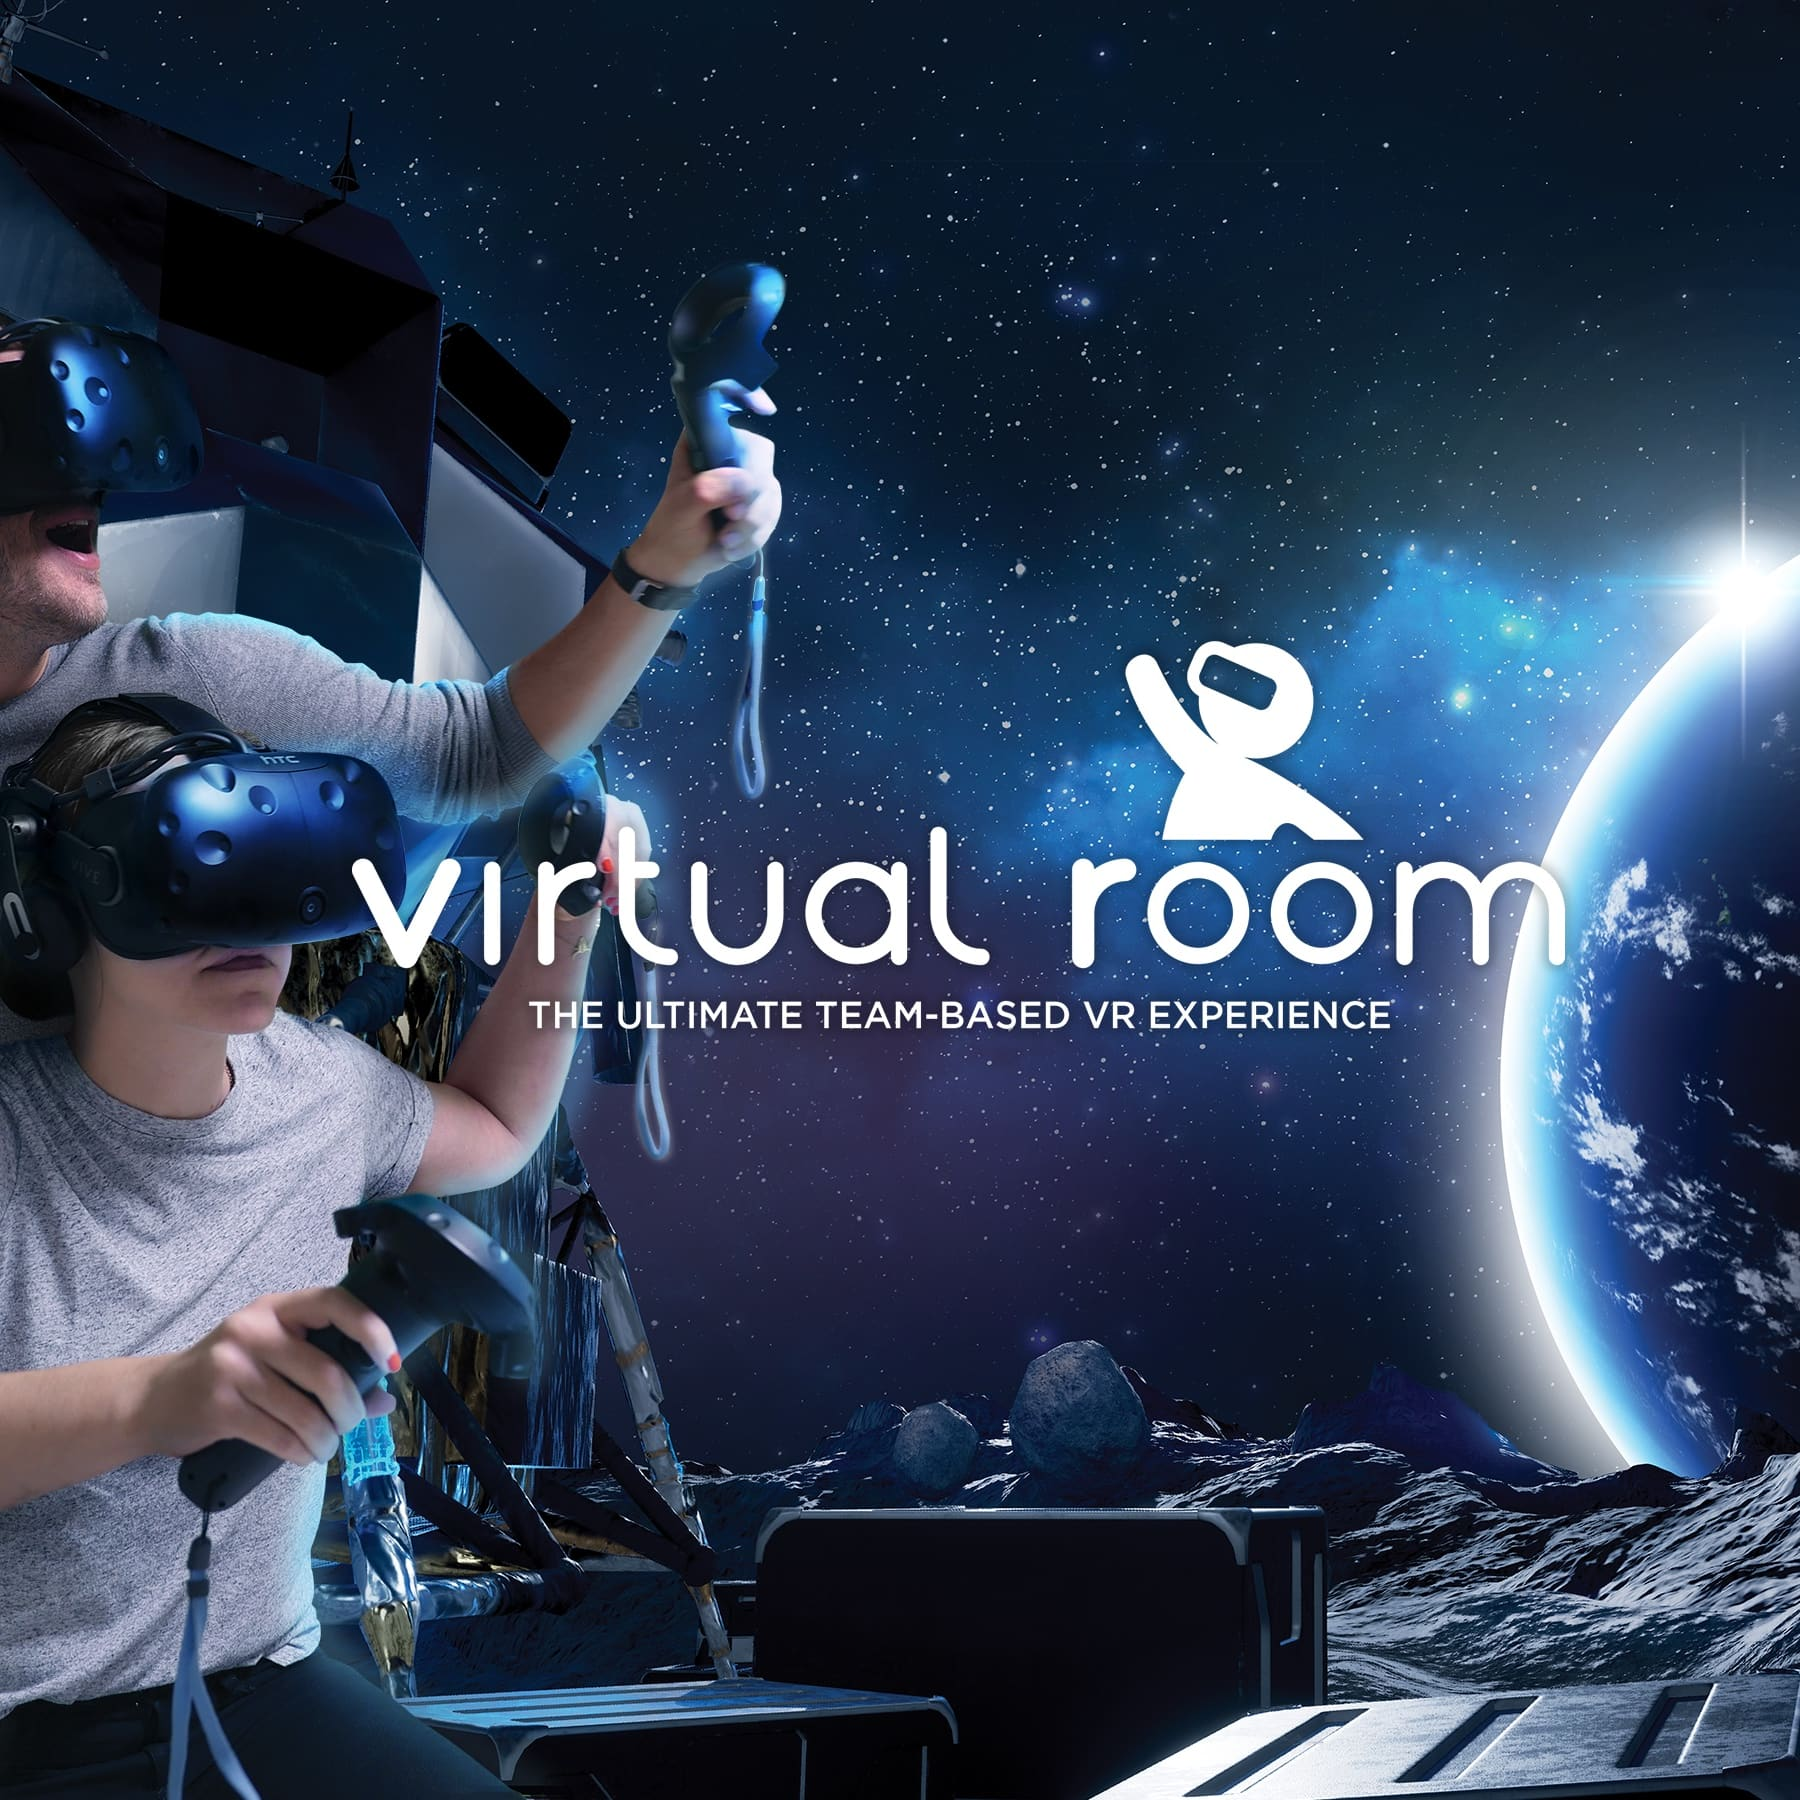 VR Adventure for 1 pax (Off Peak) at Virtual Room - Get Deals, Cashback and Rewards with ShopBack GO